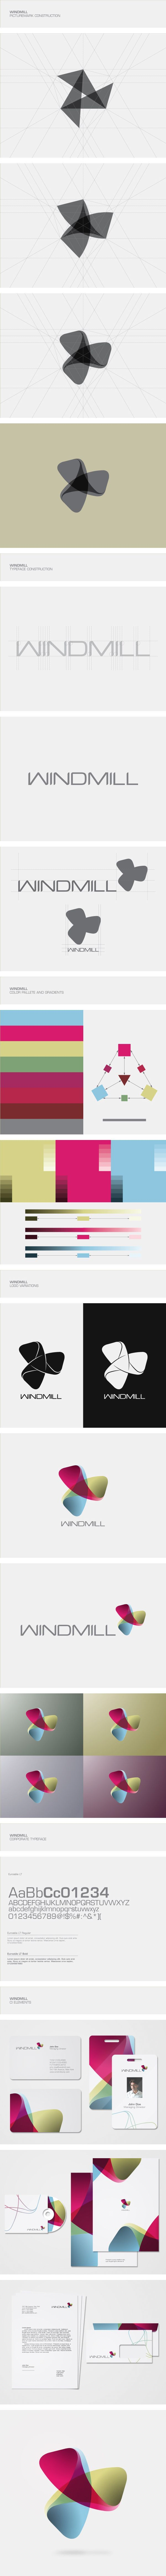 5305 best id images on pinterest typography graphics and 8a8b4d4c6a3cfea3b120911a1885f9d2g 6009310 piksel spiritdancerdesigns Gallery